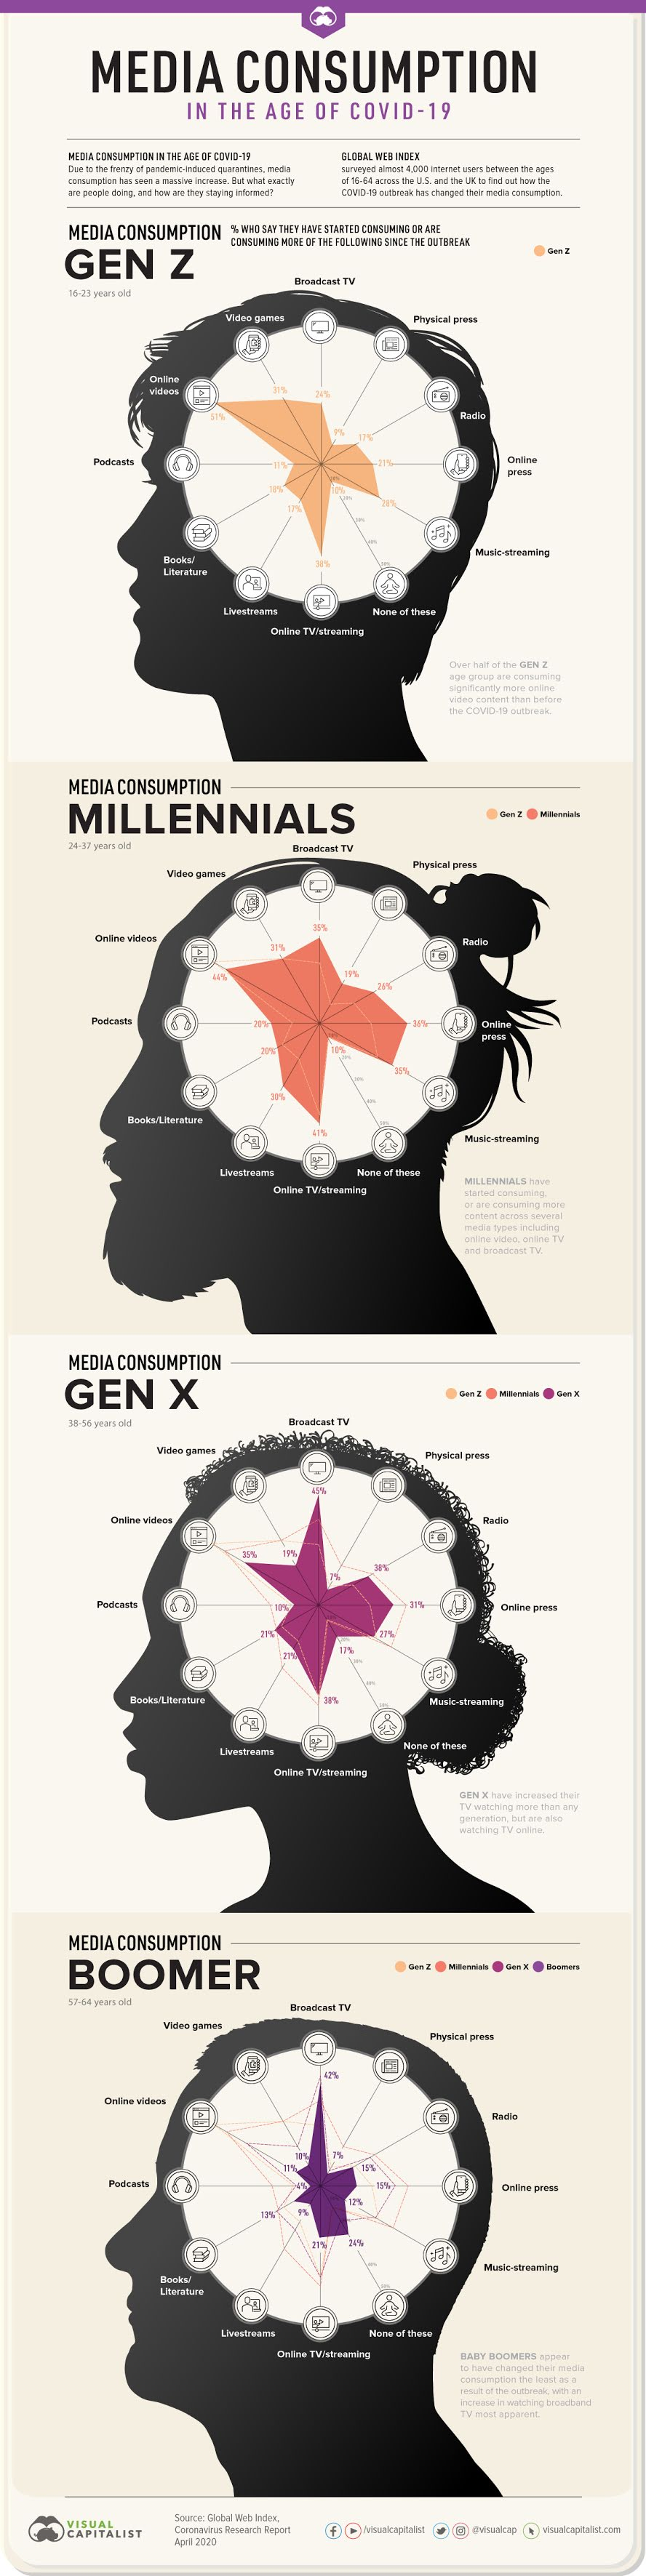 Advertising How COVID-19 Has Impacted Media Consumption, by Generation #infographic